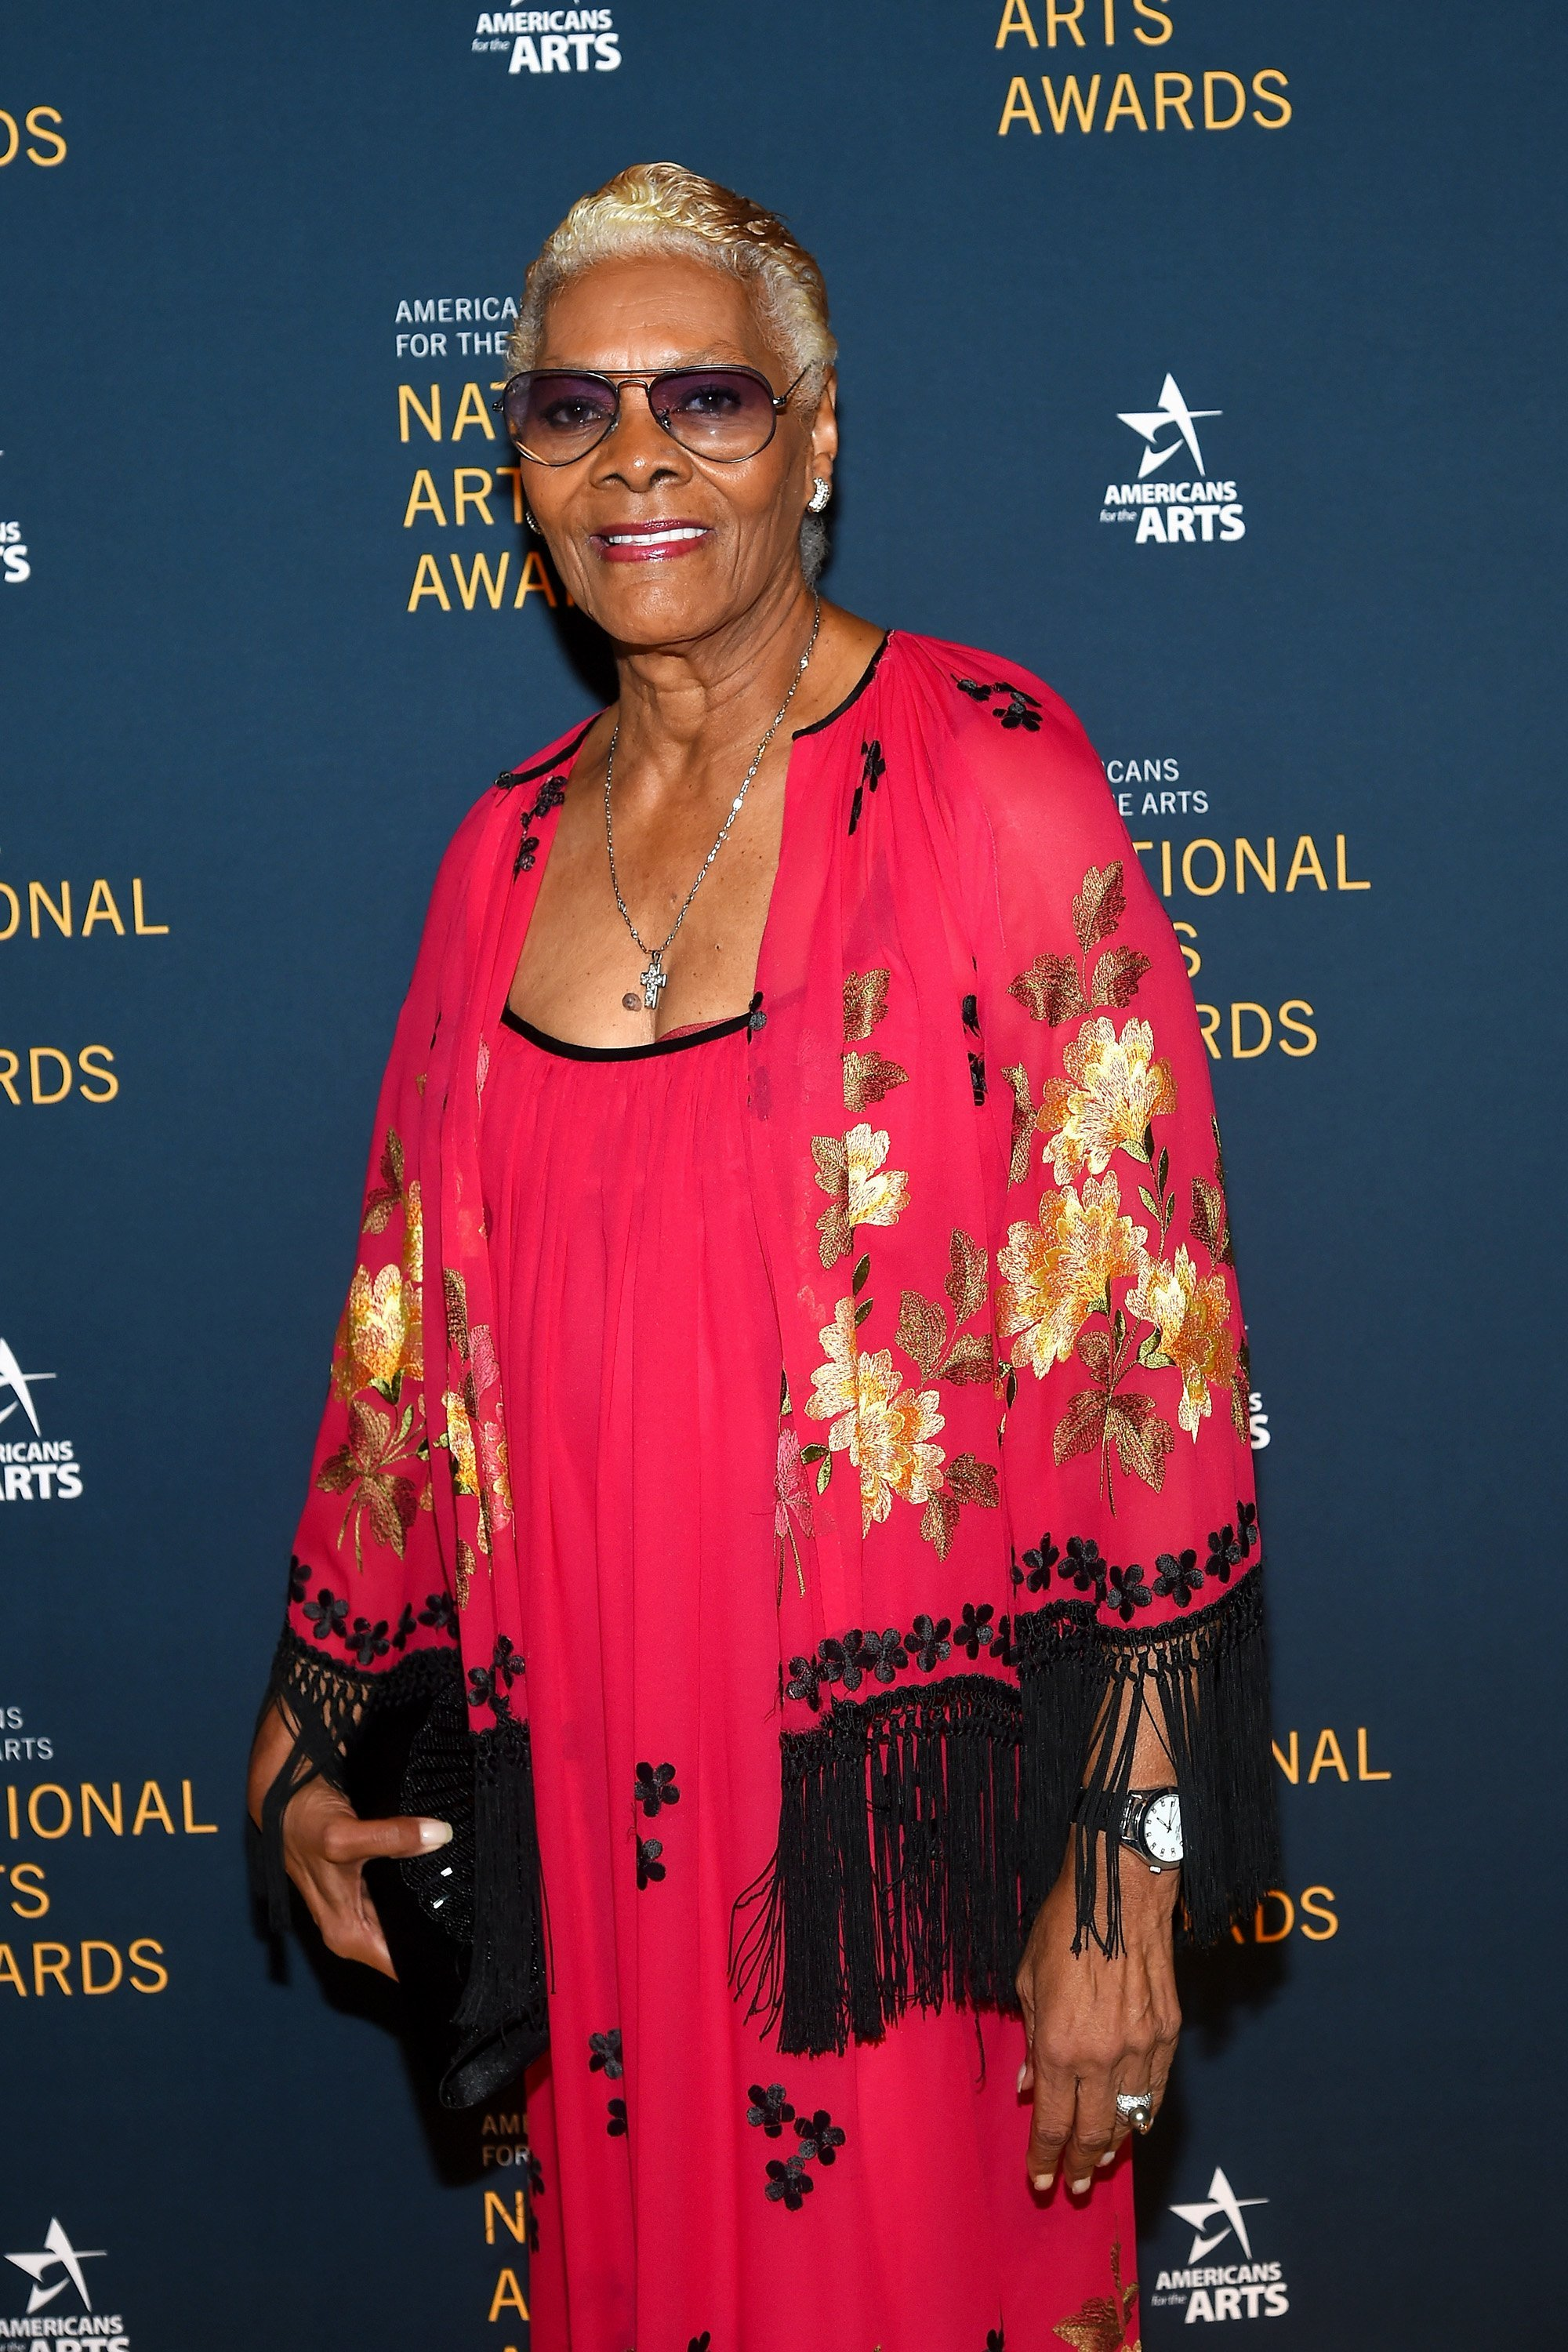 Dionne Warwick at the National Arts Awards on Oct. 23, 2017 in New York City | Photo: Getty Images